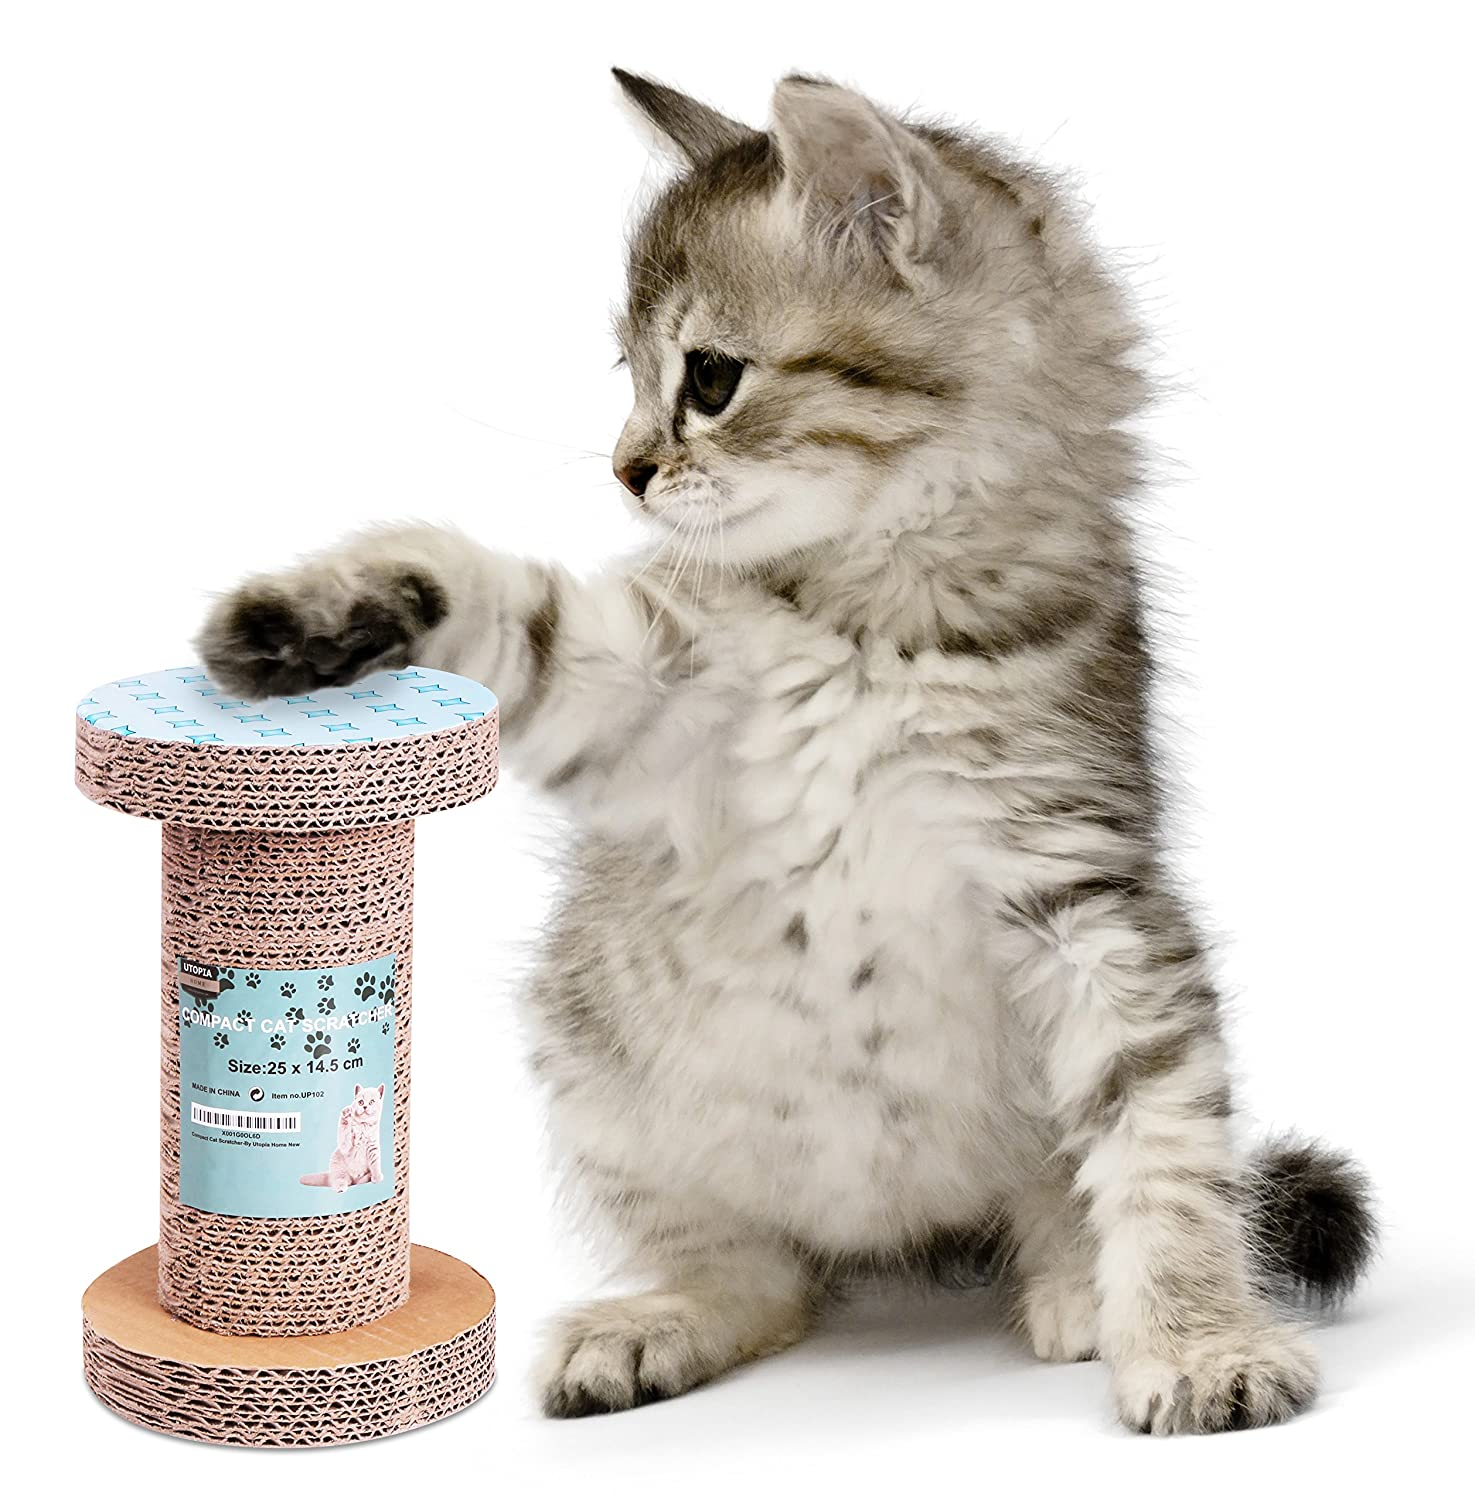 85%OFF Cat Scratcher - Cat Friendly Scratching Post - Compact Size and Portable Cat Scratch Tube - By Utopia Home